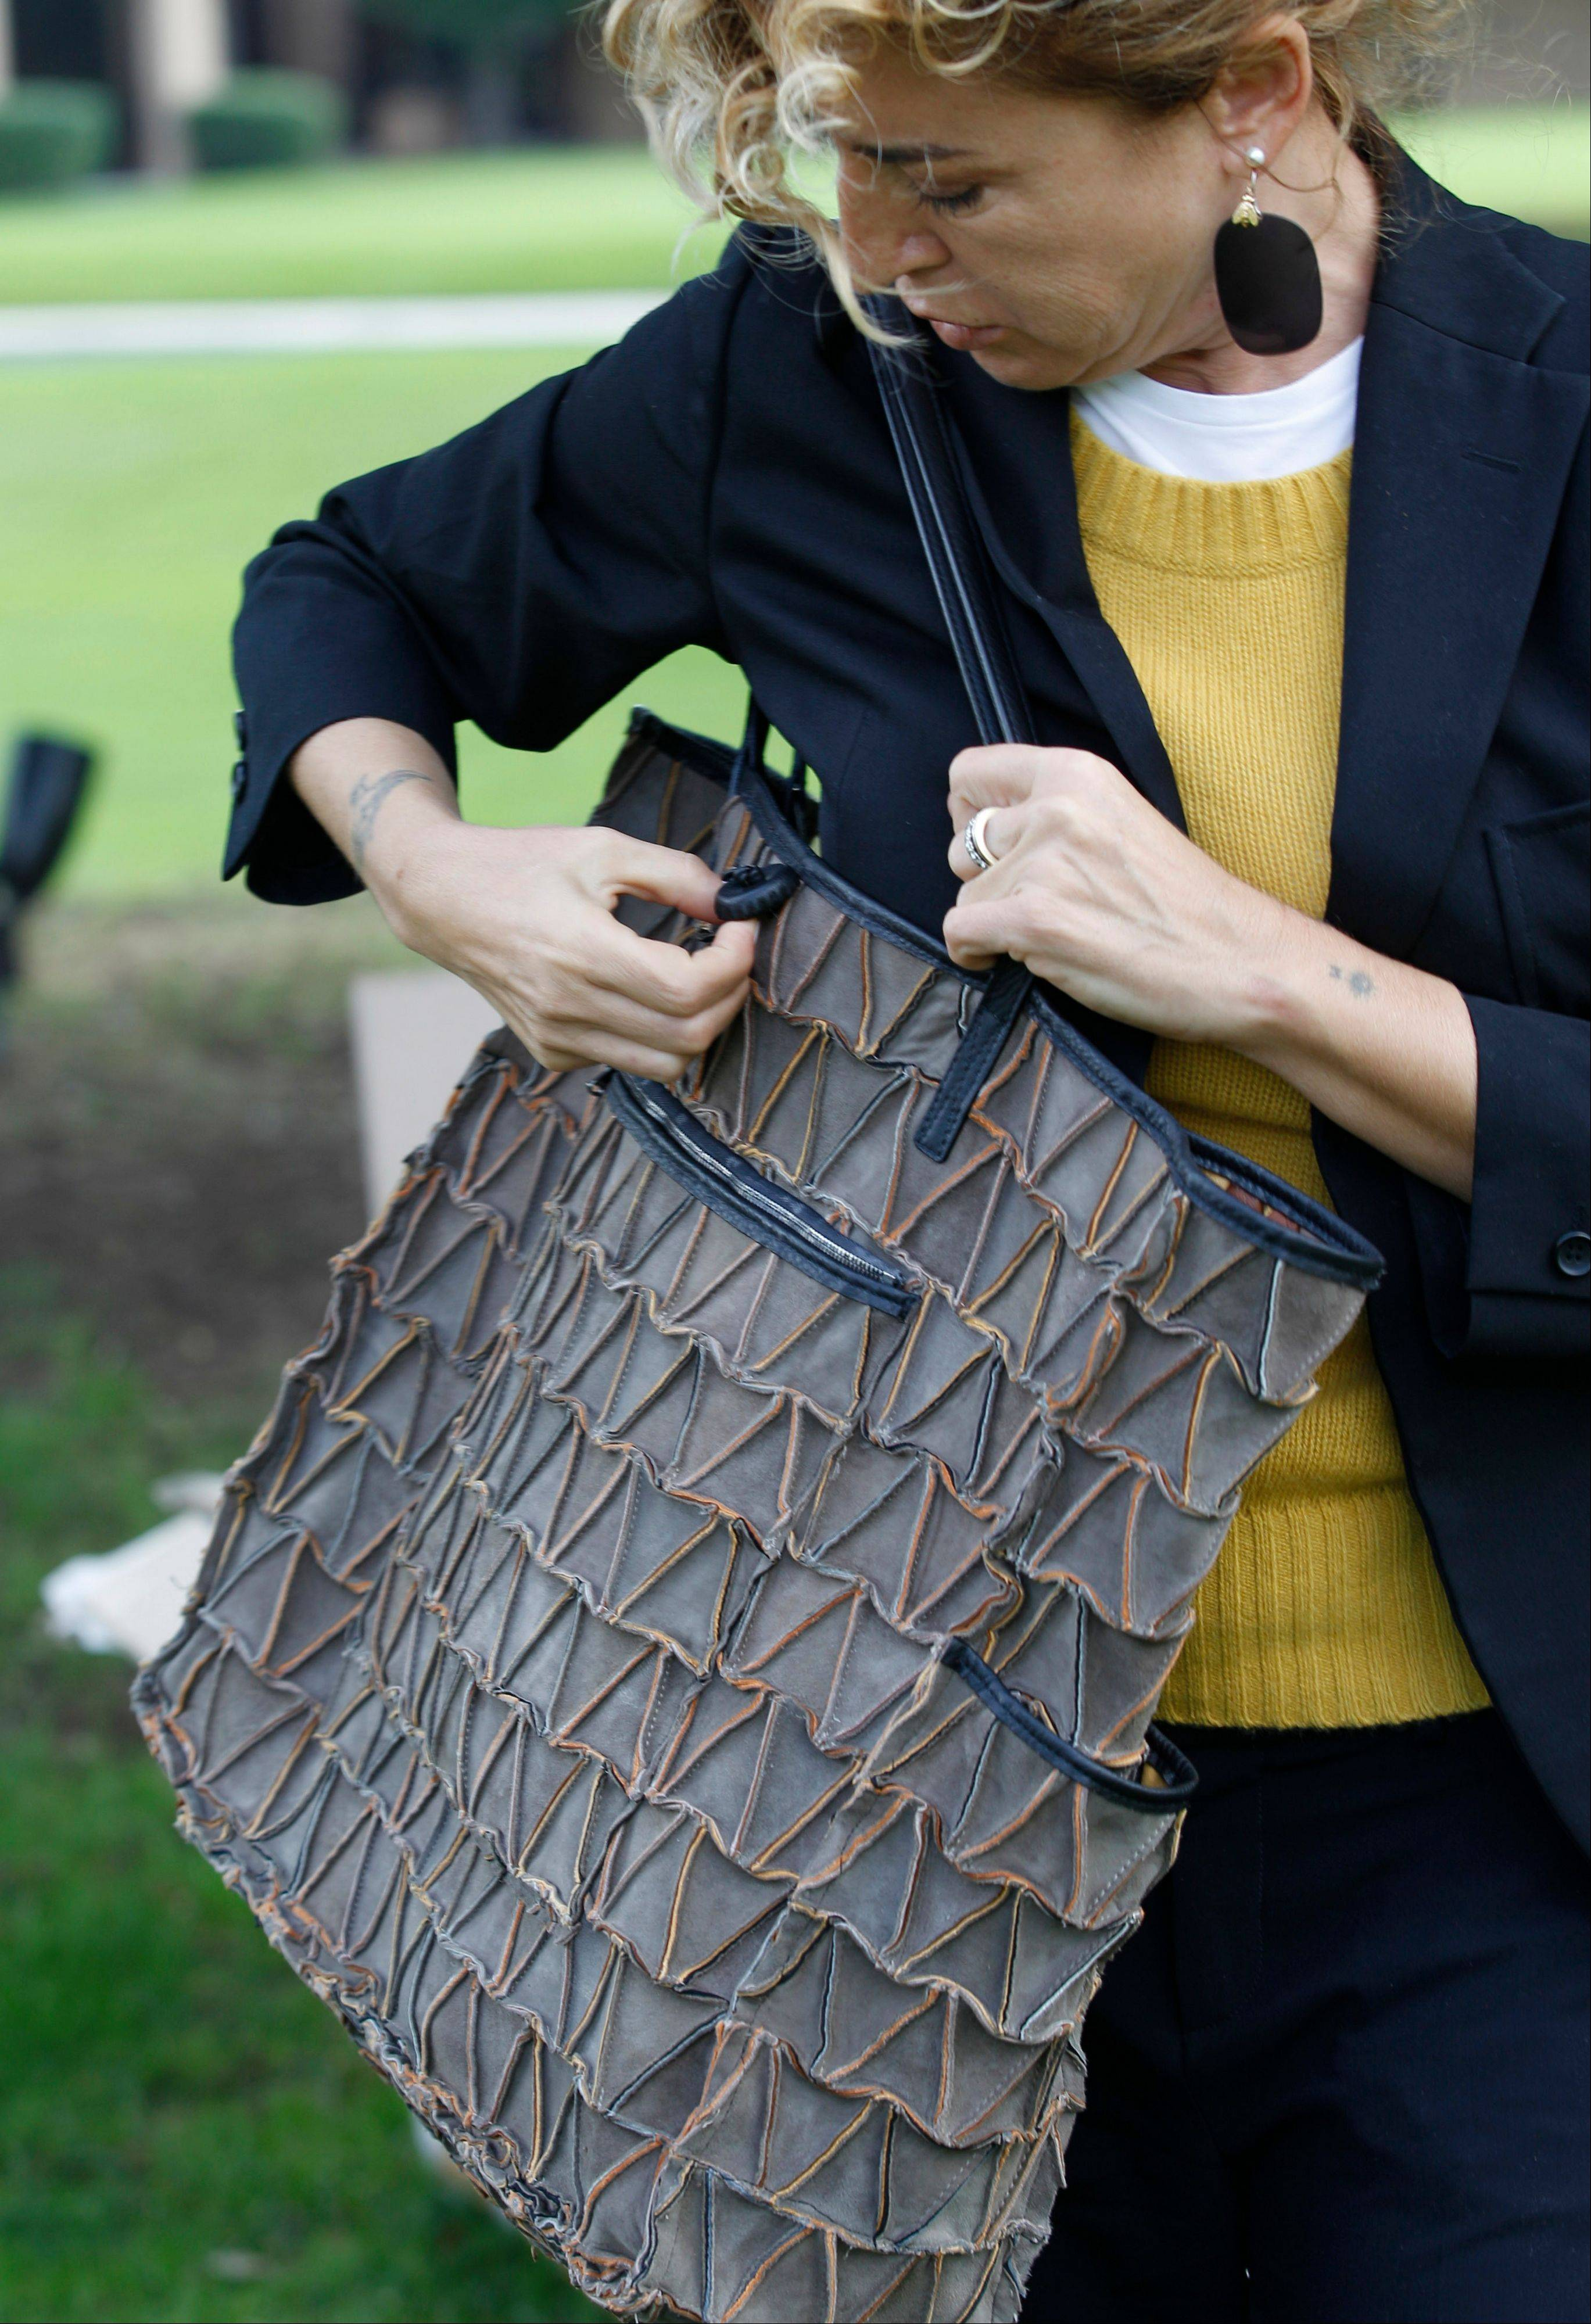 This Oct. 24, 2012 photo shows Ilaria Venturini Fendi, a member of the famous fashion family, inspects a bag from her Carmina Campus fashion project that produces bags from repurposed materials in Dallas. The bags shown are made of garbage bags and soda cans.